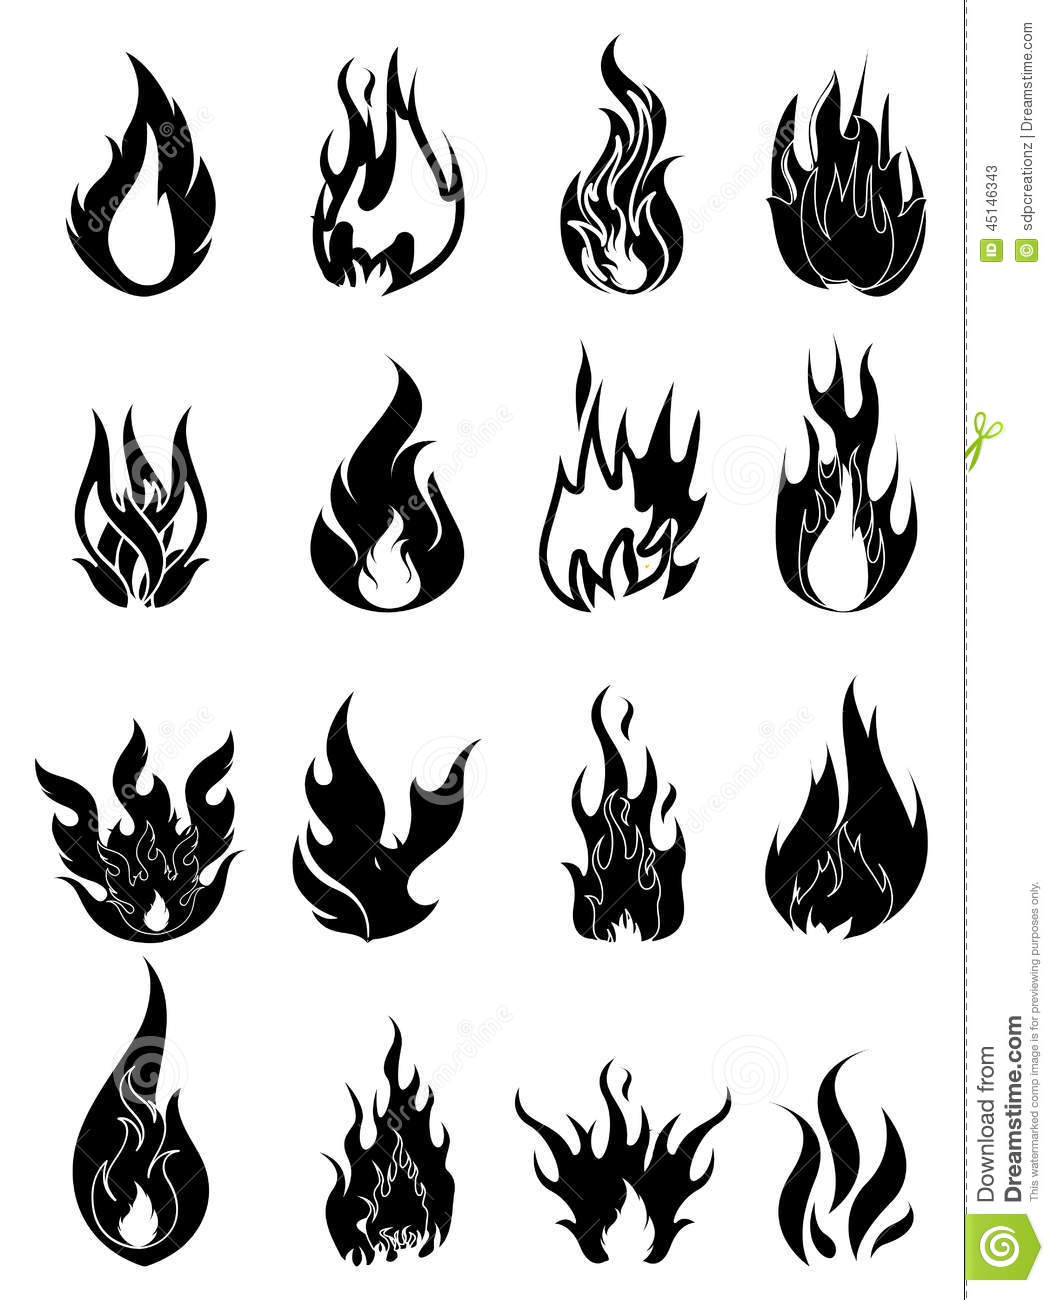 Fire Icons Set Stock Vector - Image: 45146343